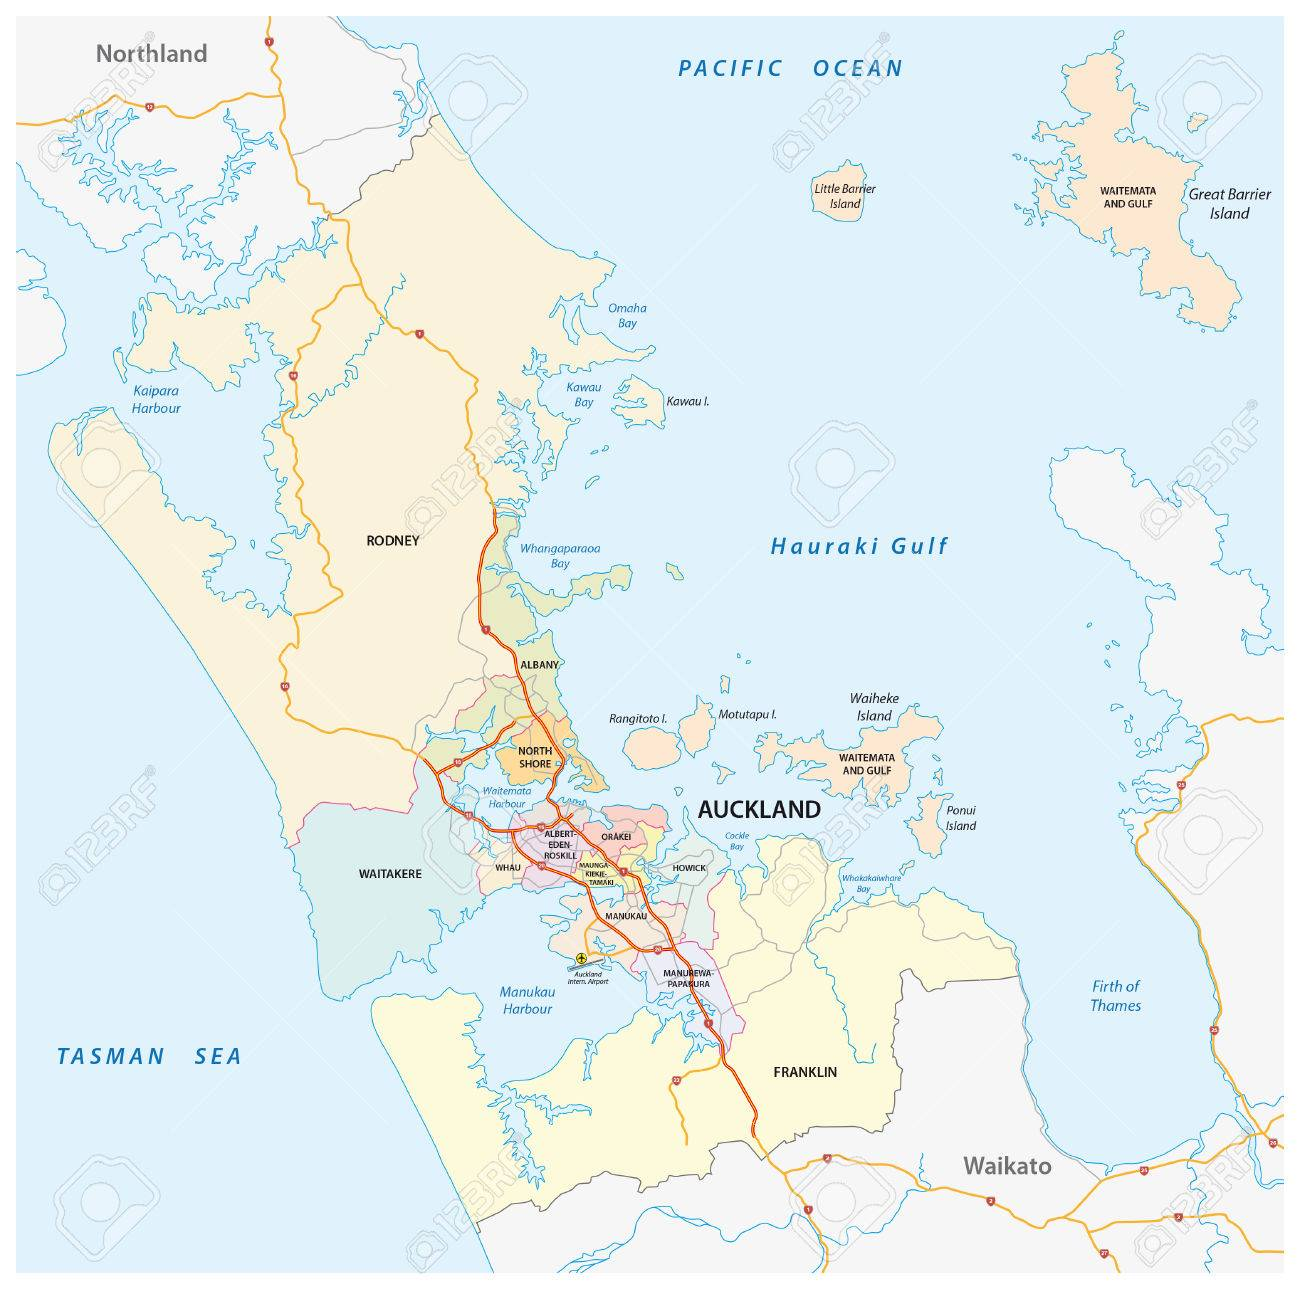 Political Map Of New Zealand.Administrative And Political Map Of The New Zealand City Auckland